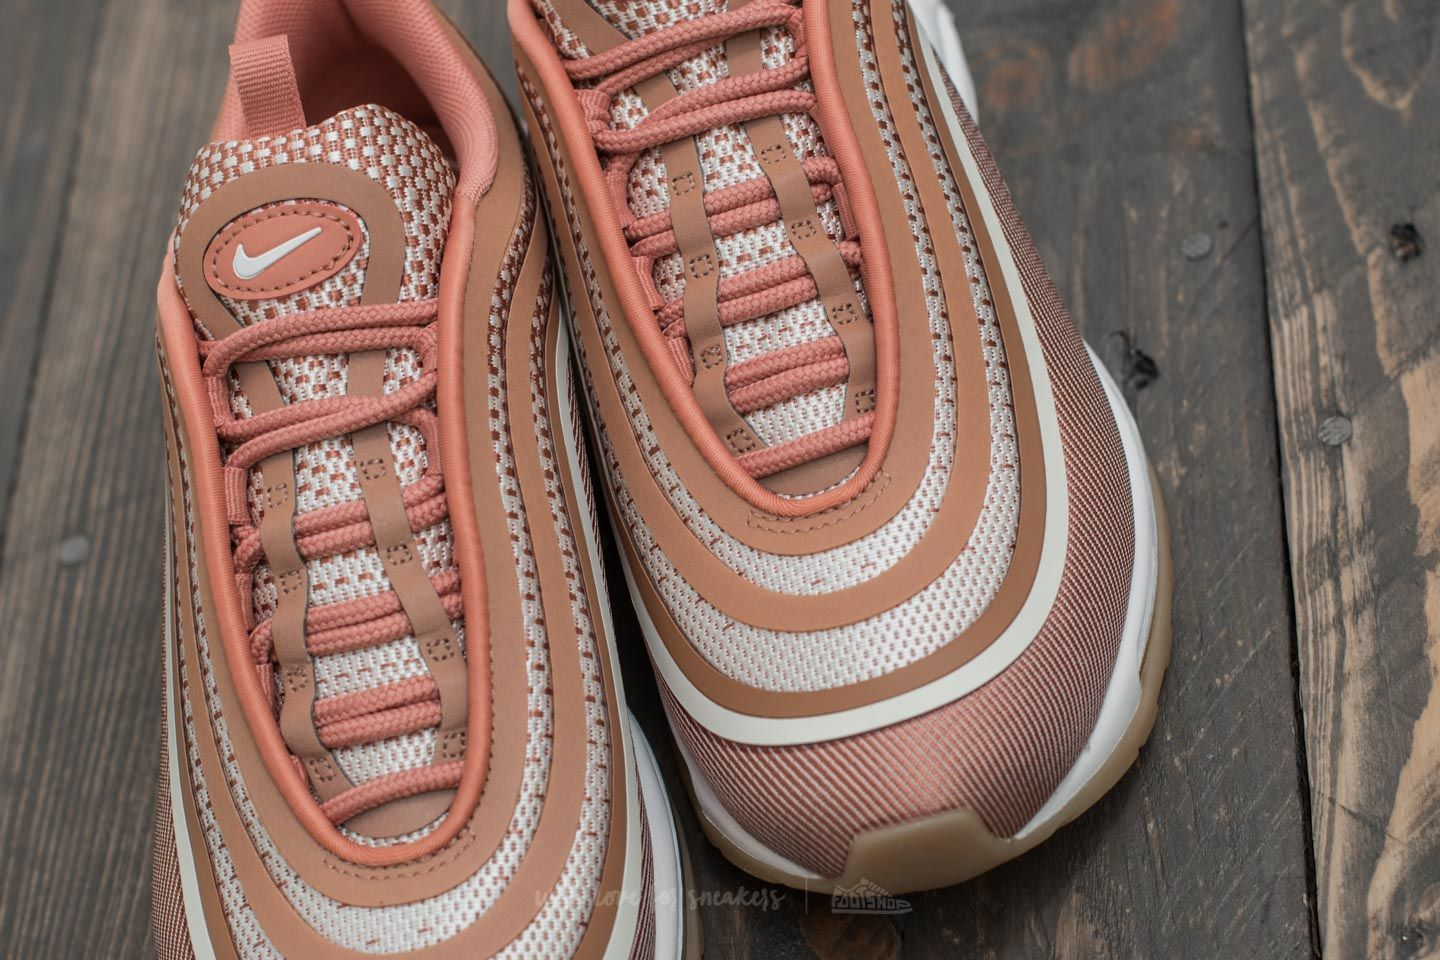 Nike Wmns Air Max 97 UL '17 Metallic Rose Gold Gum Light Brown | Footshop